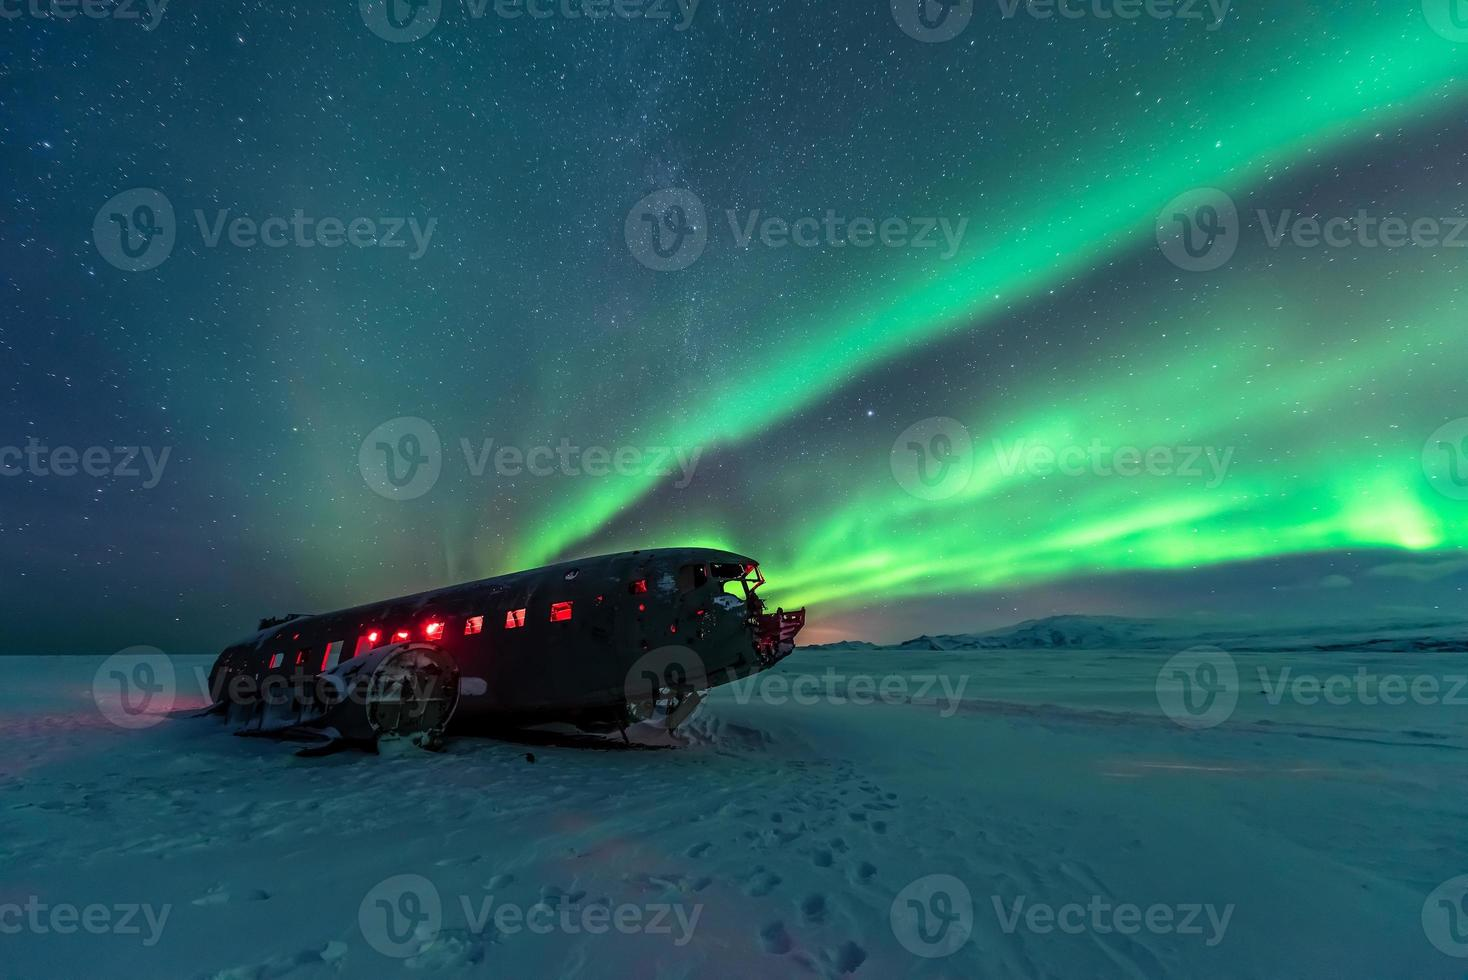 Northern lights over plane wreck photo